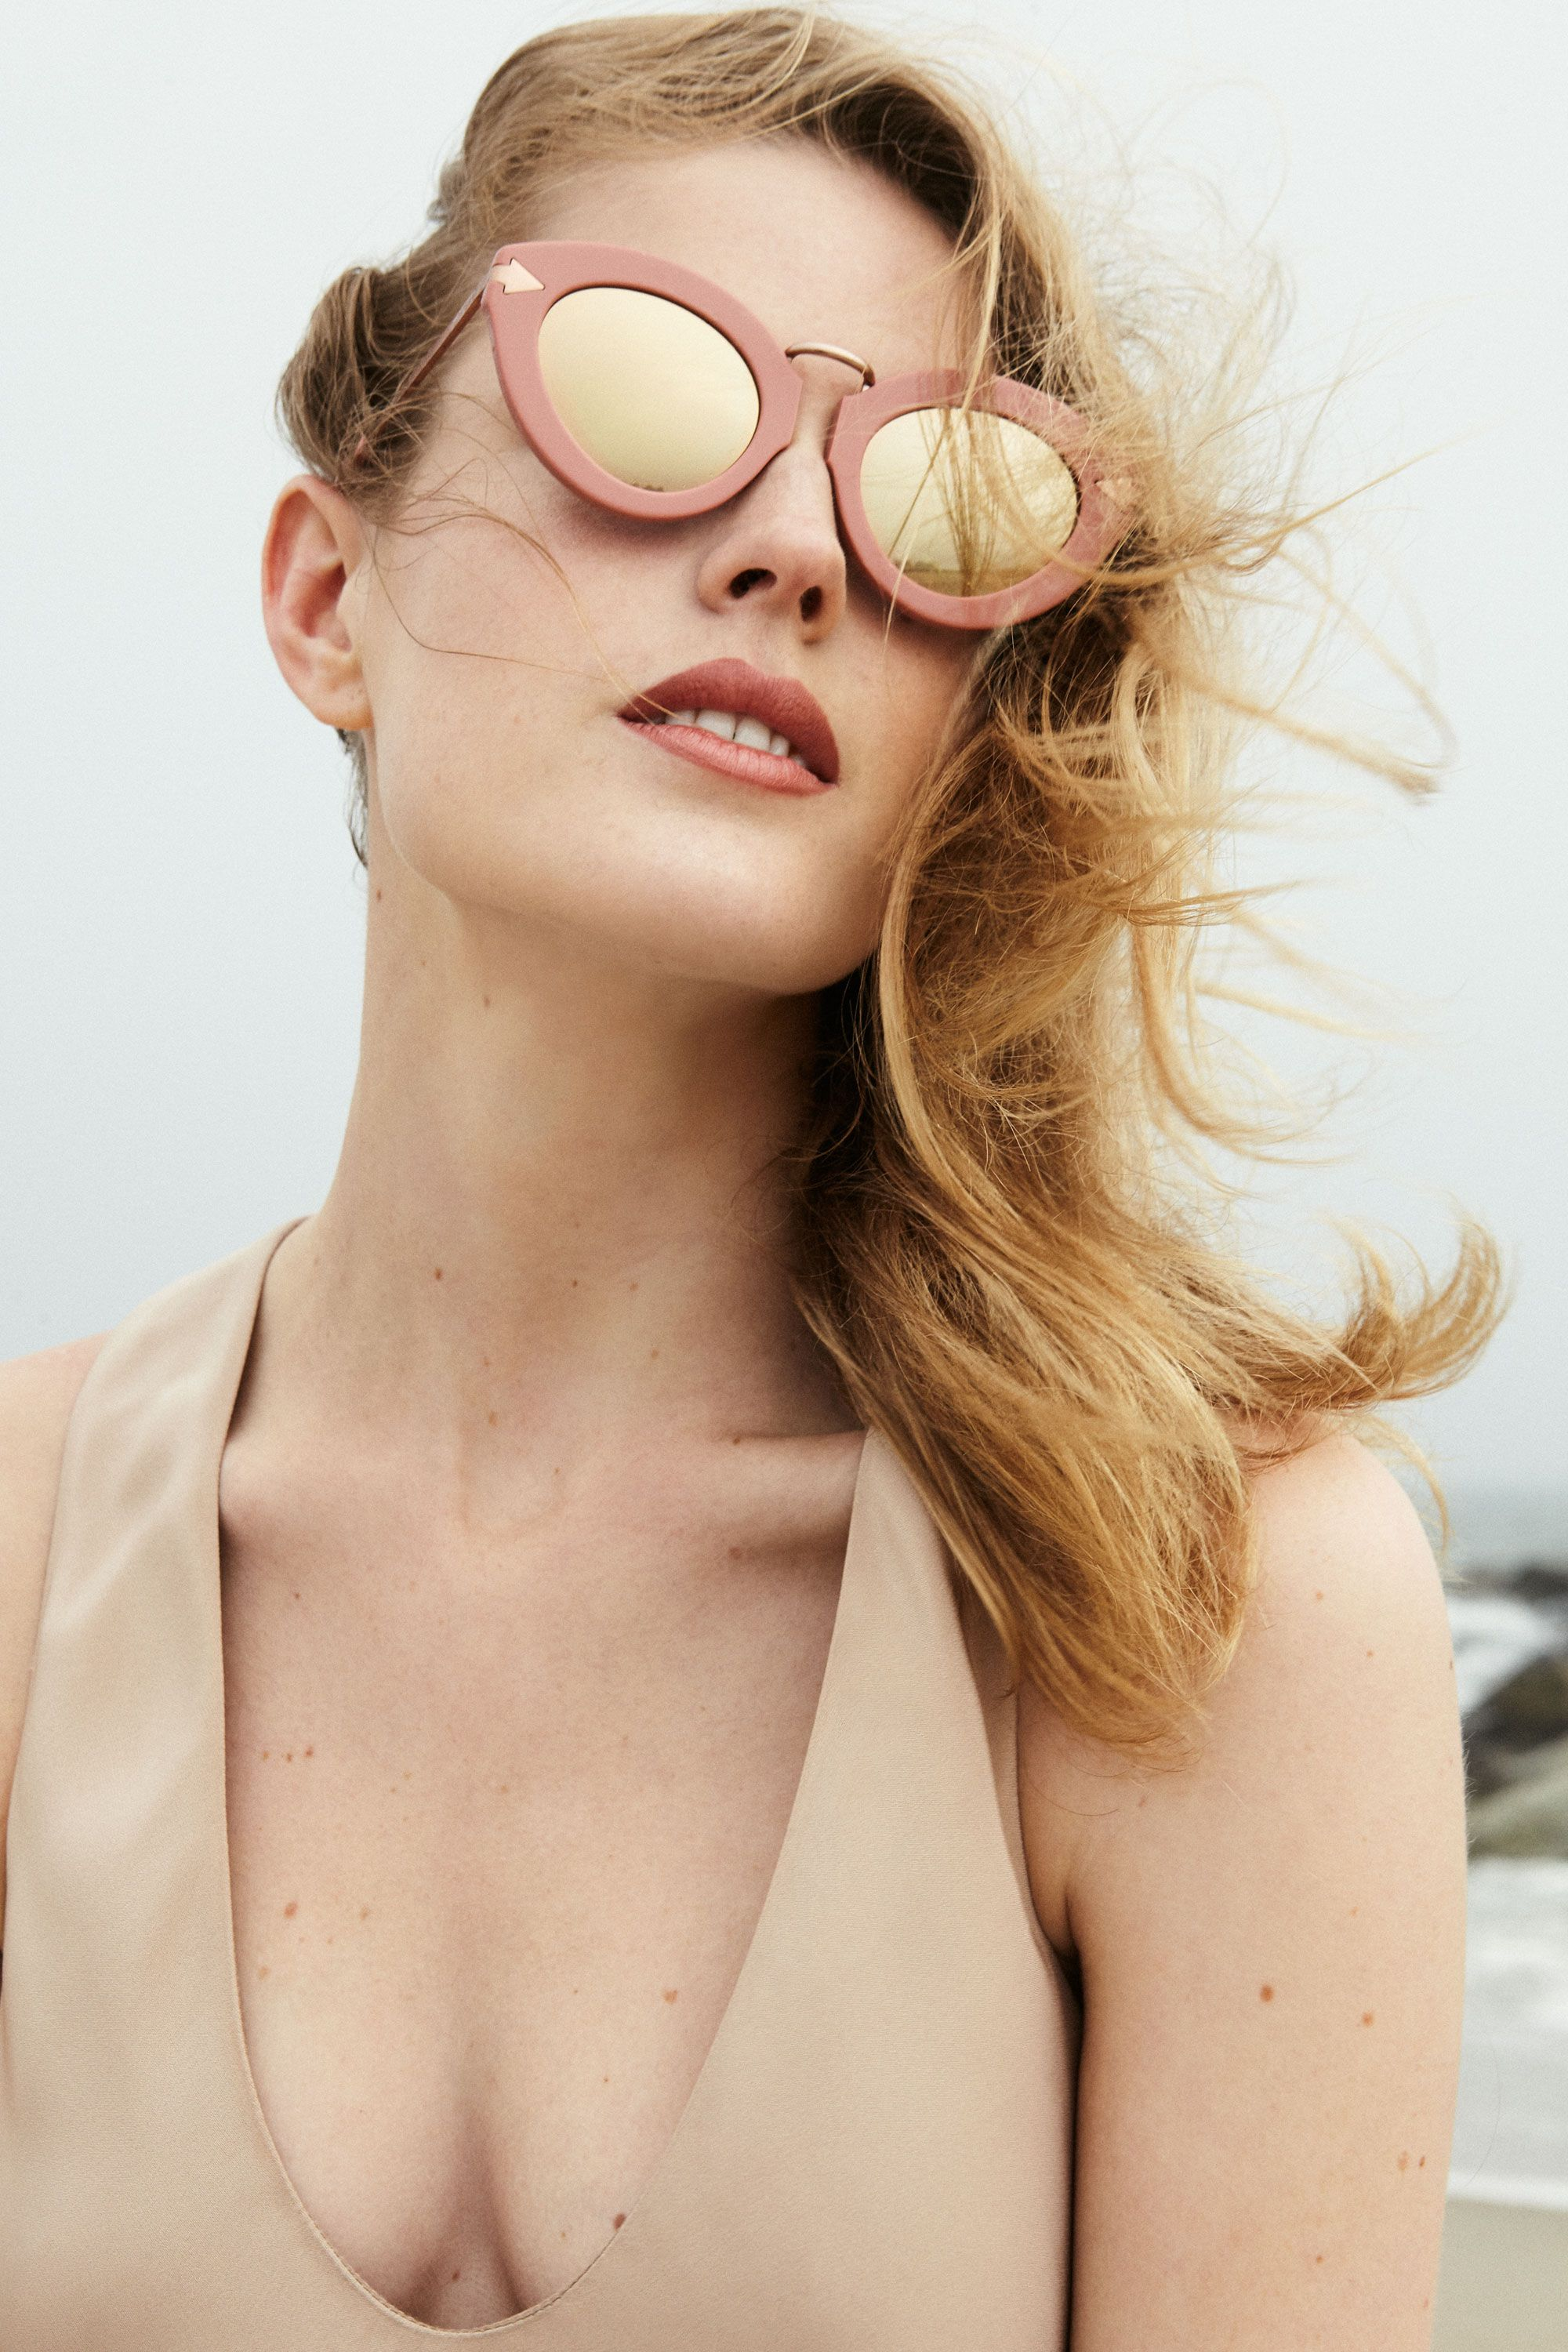 "<p>Consider pink a new neutral for sunglasses that works for a variety of skin tones. Go for a one-two tonal punch with a flushed, natural lip that gives off 1960s French girl vibes.</p><p><br></p><p>Her Lip: <em><strong>Tom Ford</strong> Lip Color Matte in Pink Tease, $52, </em><a href=""http://shop.nordstrom.com/s/tom-ford-lip-color-matte/3900236?&cm_mmc=Mindshare_Nordstrom-_-JuneShoes-_-Hearst-_-proactive"" target=""_blank""><em>nordstrom.com</em></a> </p><p><br></p><p>Her Look: <em><strong>Karen Walker</strong> 'Lunar Flowerpatch' 49mm Sunglasses, $300, </em><em><a href=""http://shop.nordstrom.com/s/lunar-flowerpatch/4290543?&cm_mmc=Mindshare_Nordstrom-_-JuneShoes-_-Hearst-_-proactive"" target=""_blank"">nordstrom.com</a>; <strong>Tibi </strong>Silk Bias Dress, $398, </em><a href=""http://www.tibi.com/shop/sale/dresses/silk-bias-dress-41334"" target=""_blank""><em>tibi.com</em></a></p>"